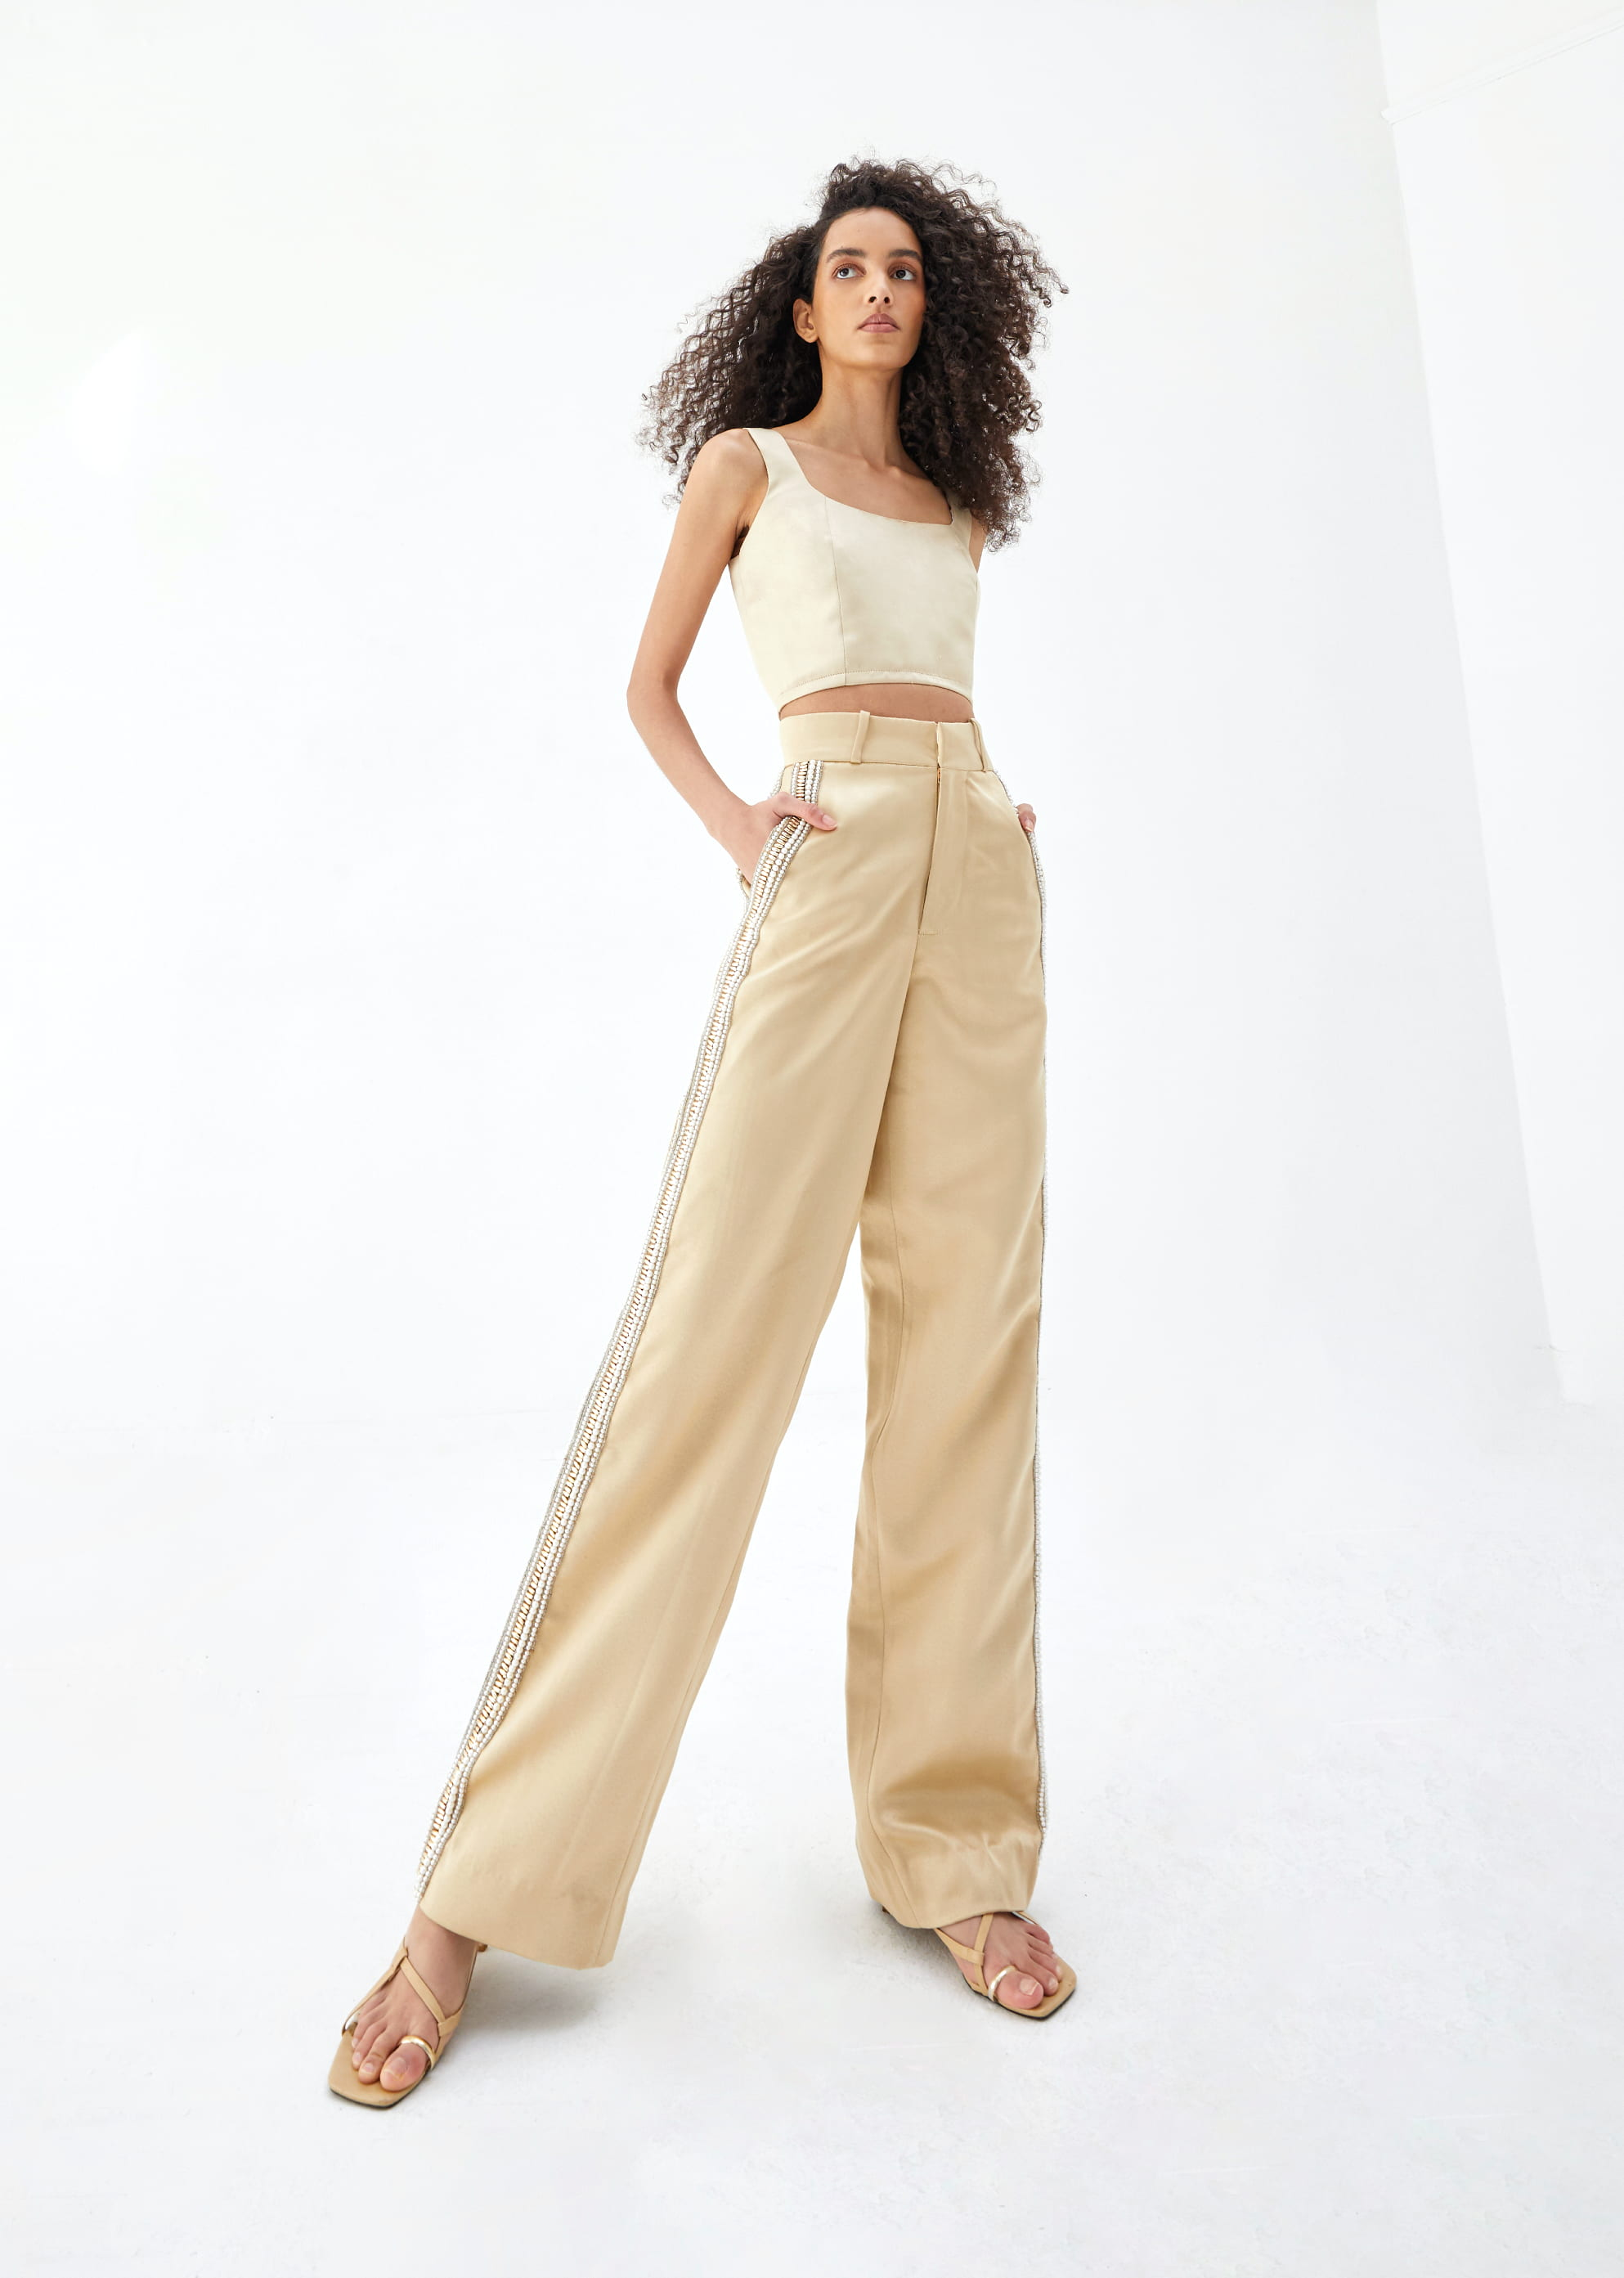 View 3 of model wearing Kismah Trousers in sand gold.